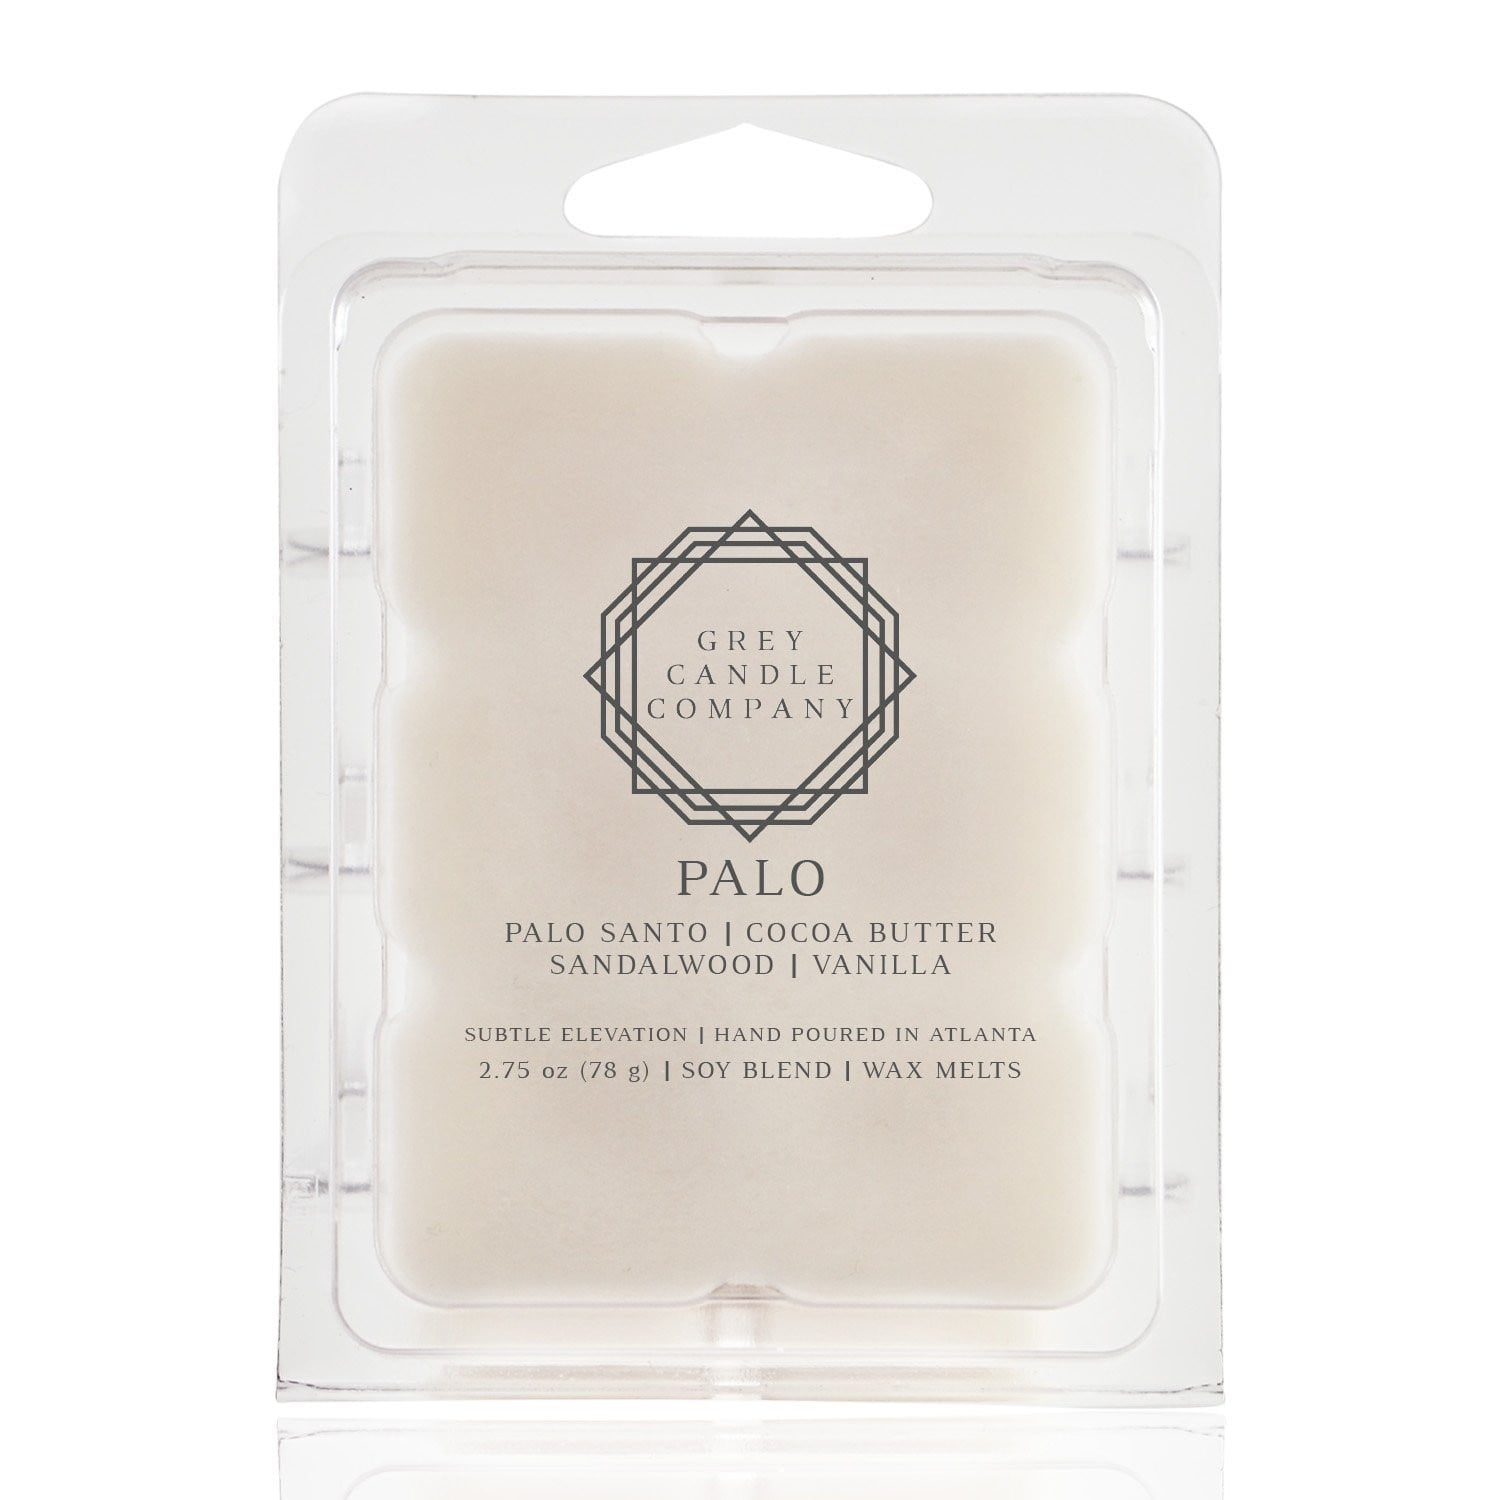 PALO - Wax Melts